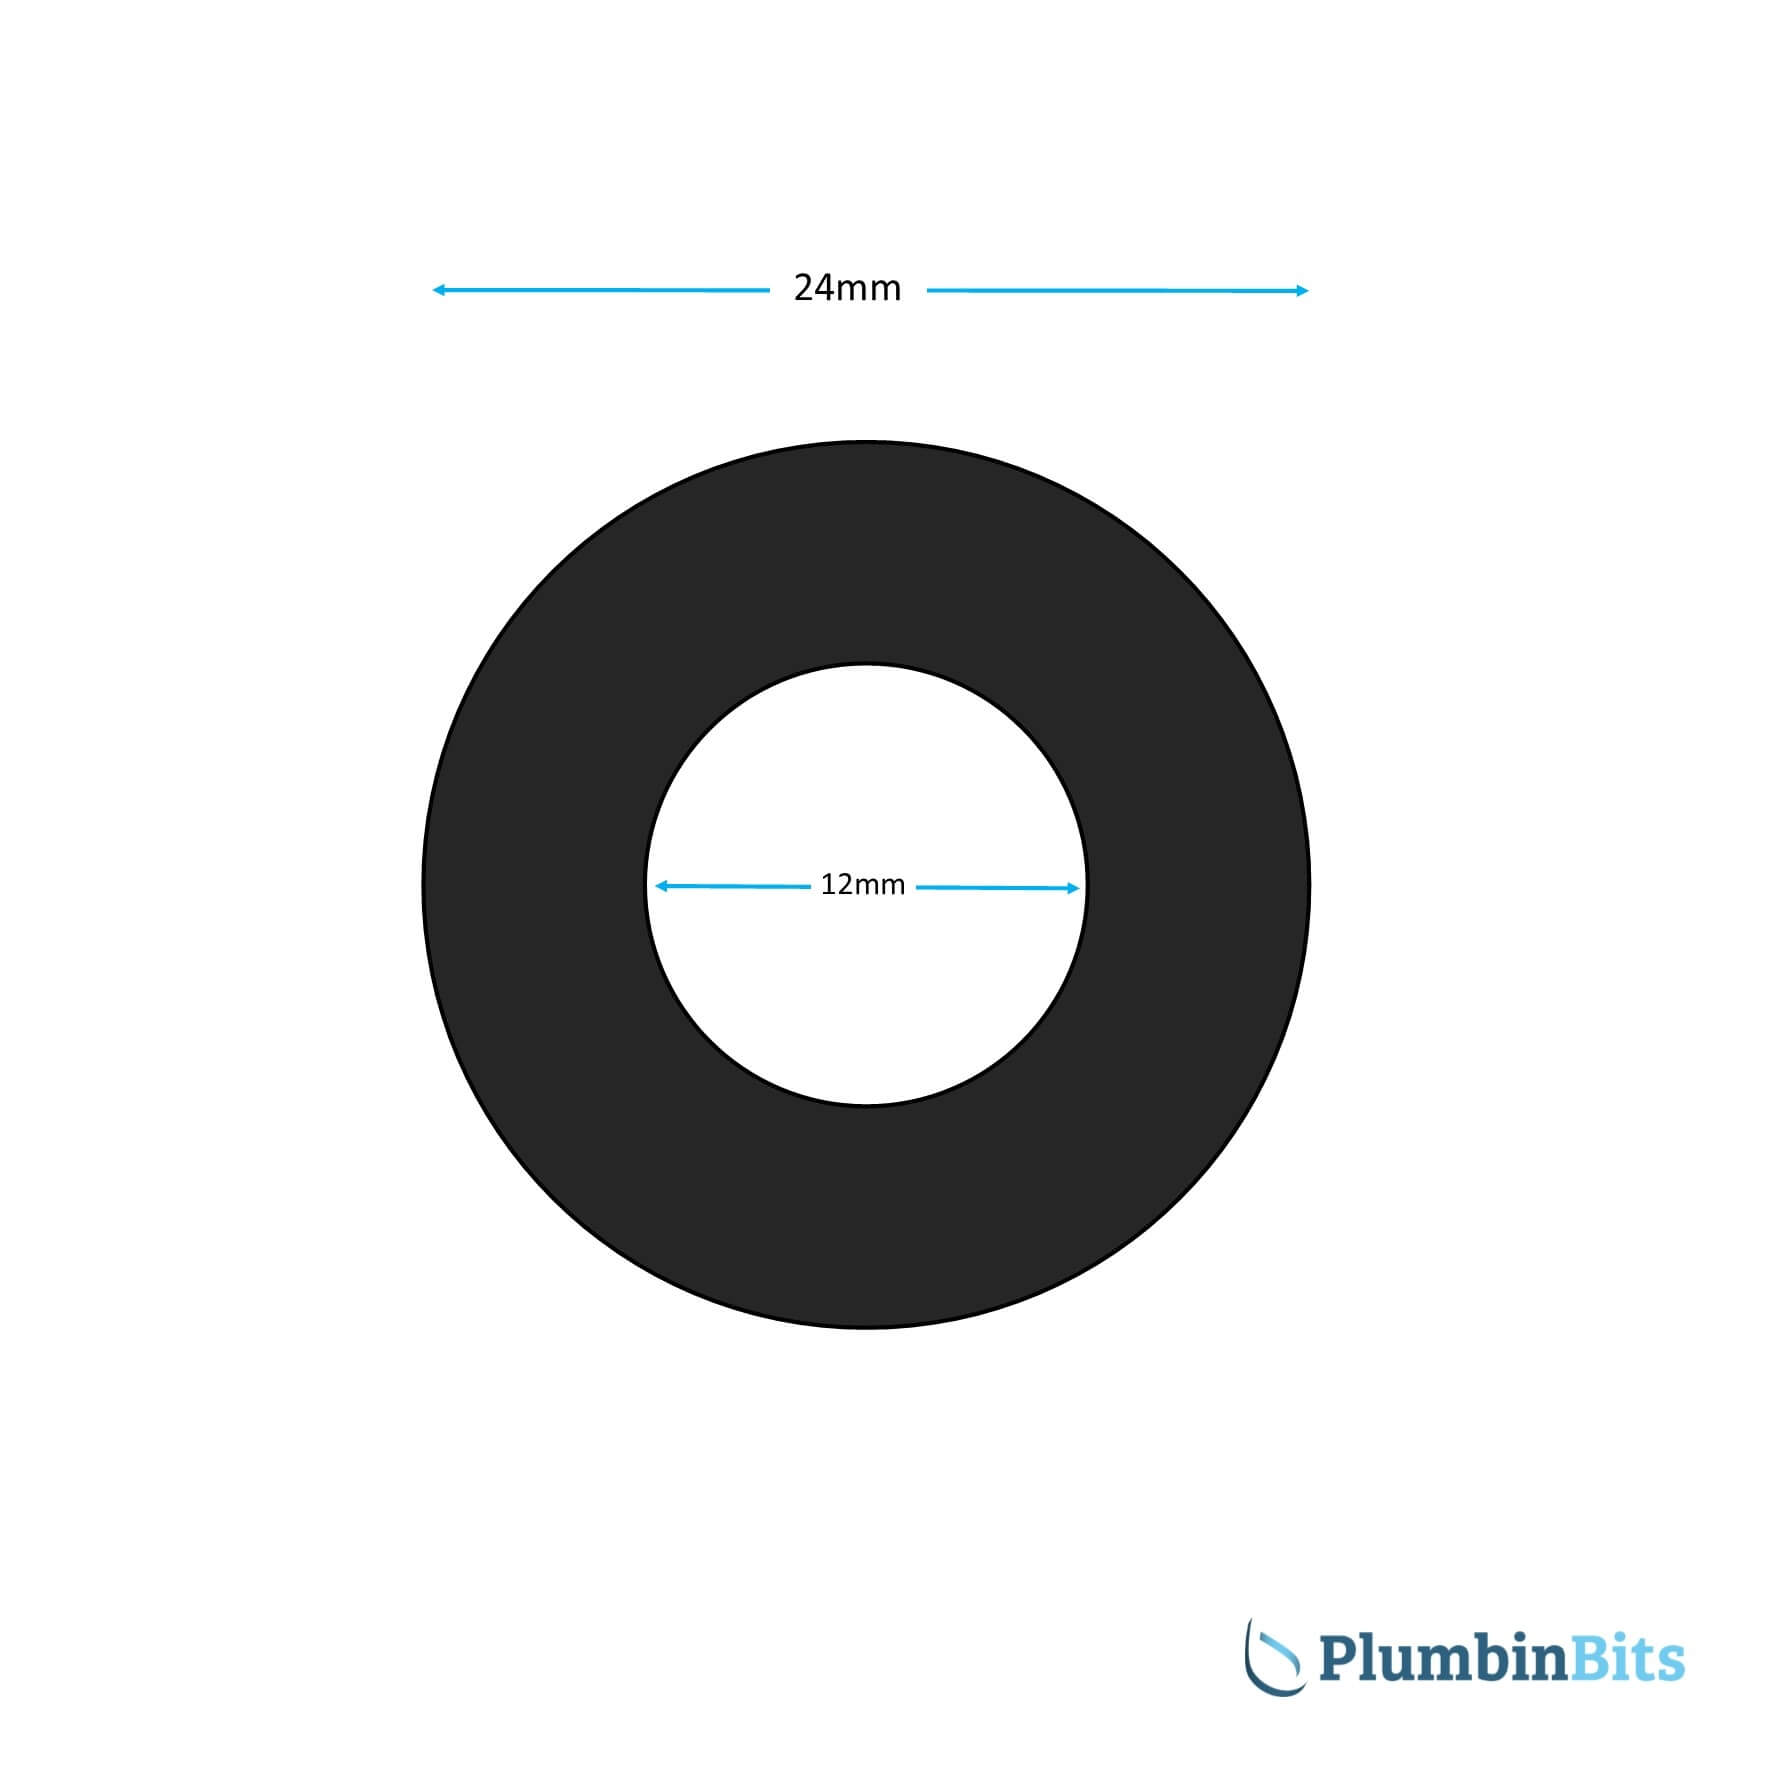 24mm Rubber washer measurements